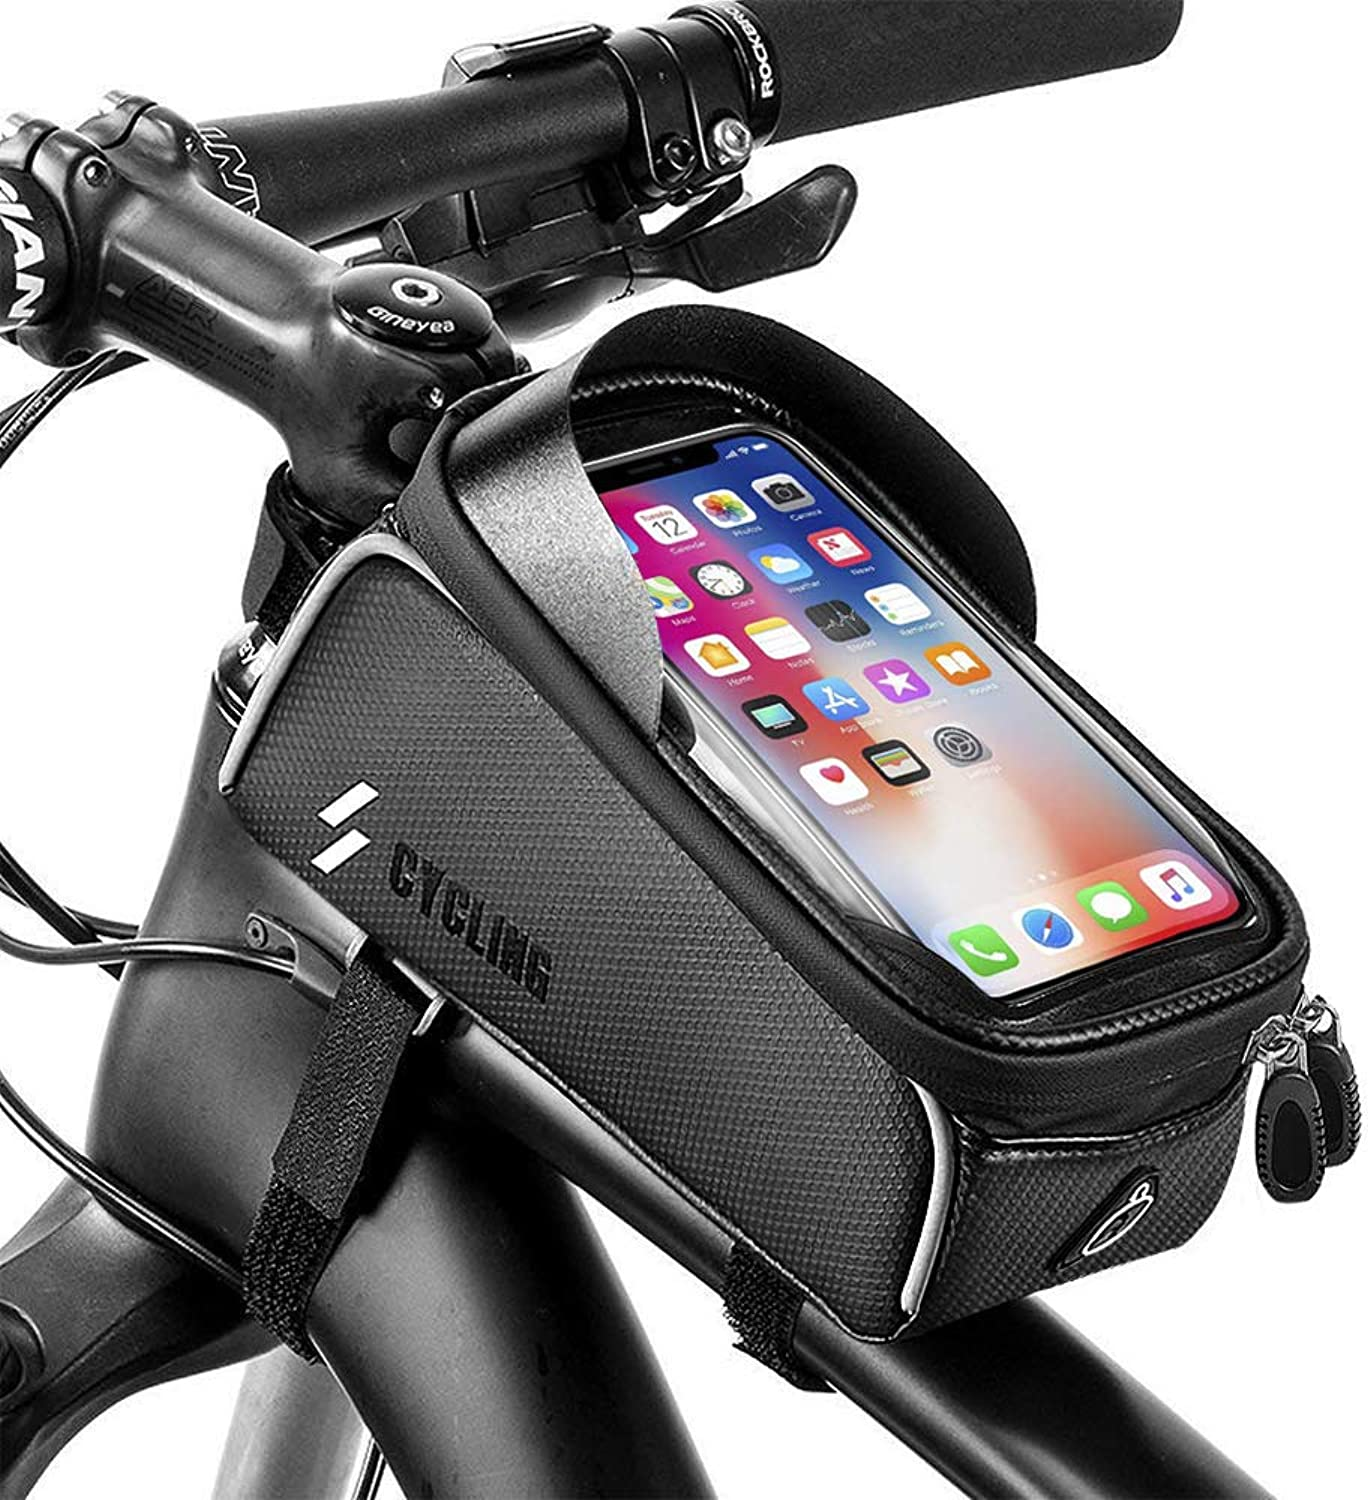 How to make your own phone bike mount